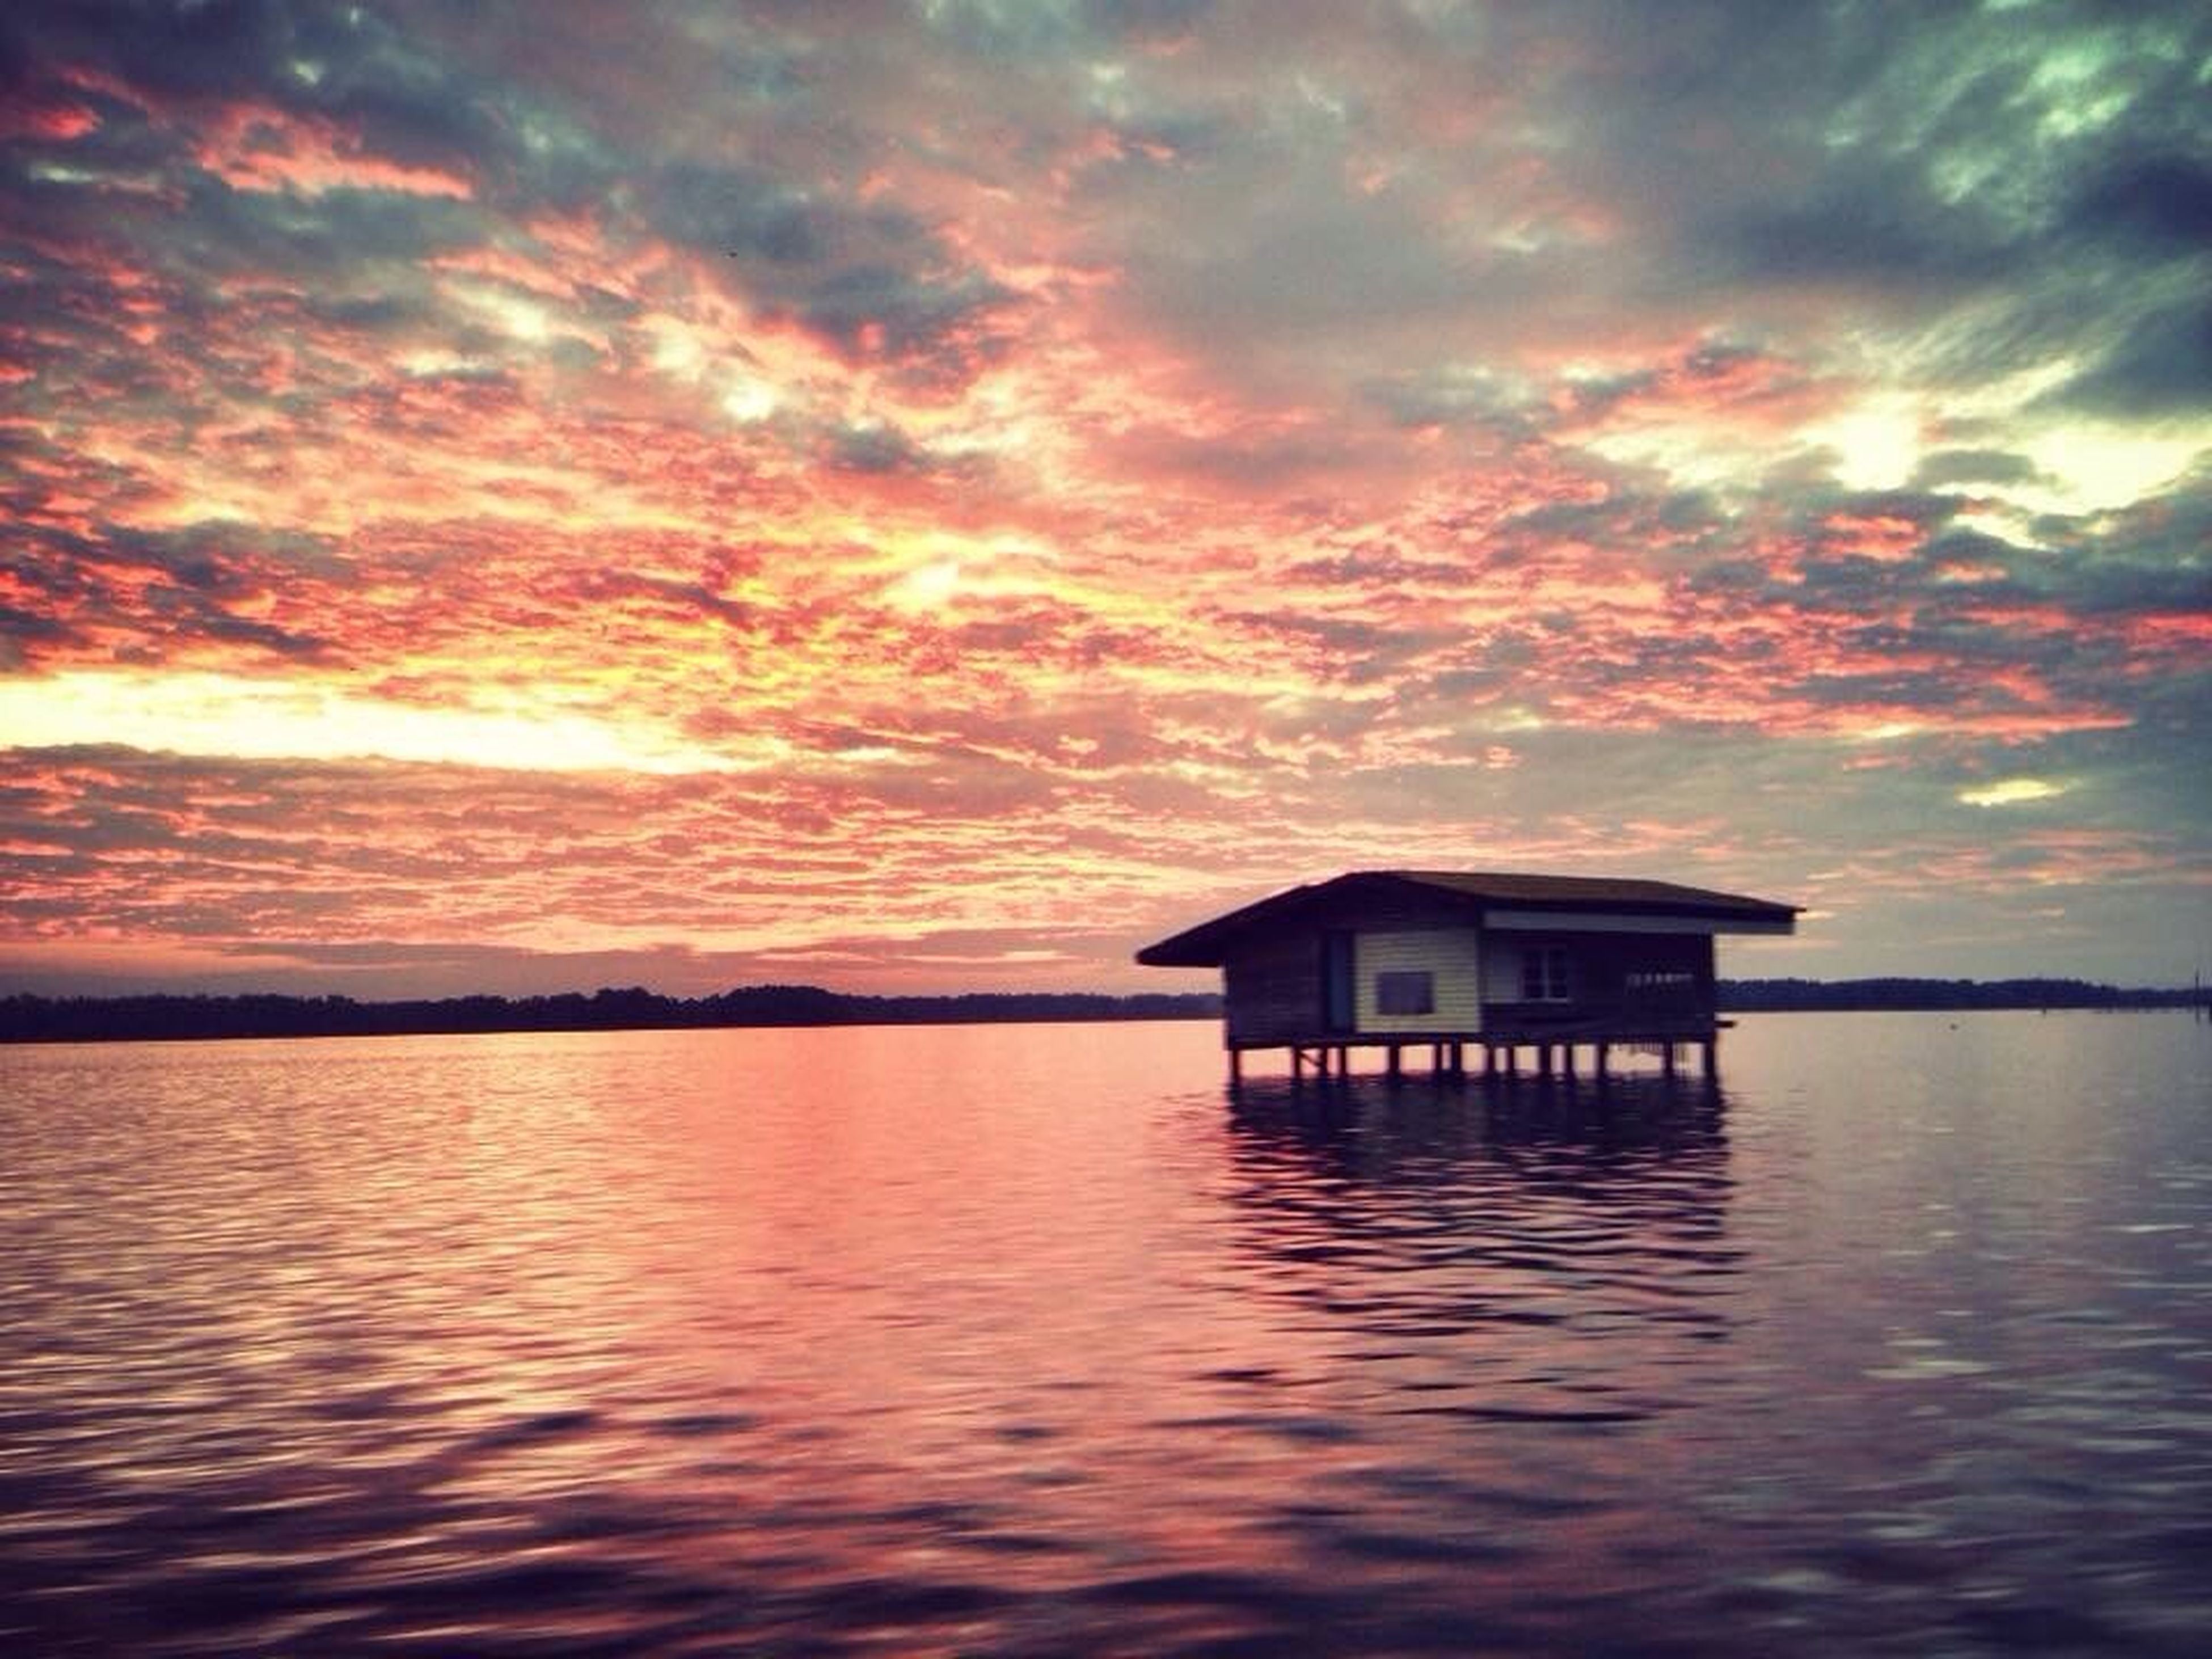 sunset, water, waterfront, sky, built structure, architecture, building exterior, cloud - sky, scenics, tranquil scene, beauty in nature, tranquility, reflection, rippled, cloudy, cloud, orange color, house, sea, idyllic